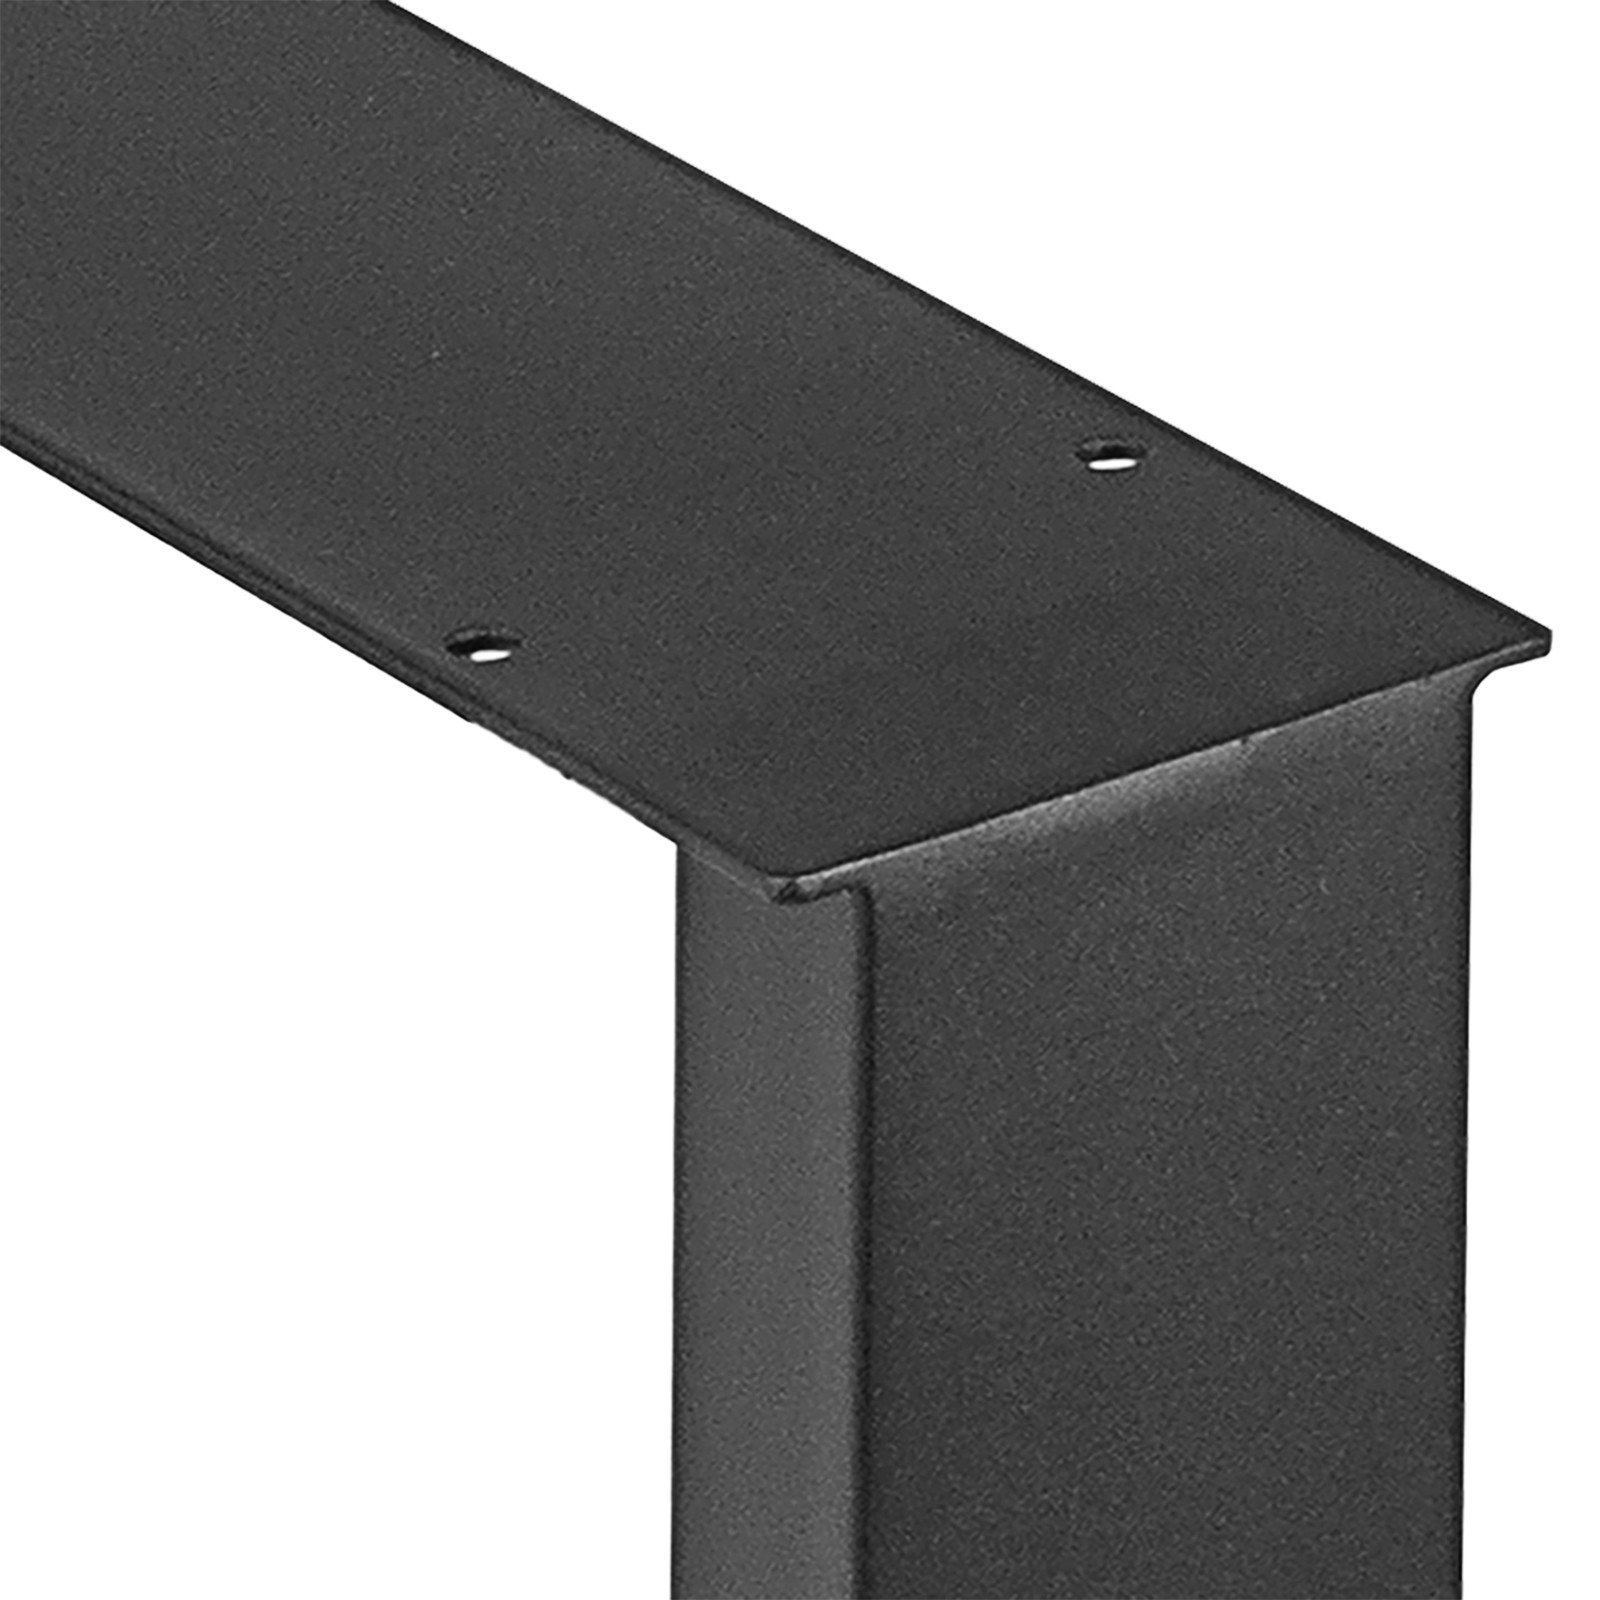 2X-Table-Legs-Black-Dining-Table-Leg-Heavy-Duty-Computer-Desk-Legs-Rectangle thumbnail 43